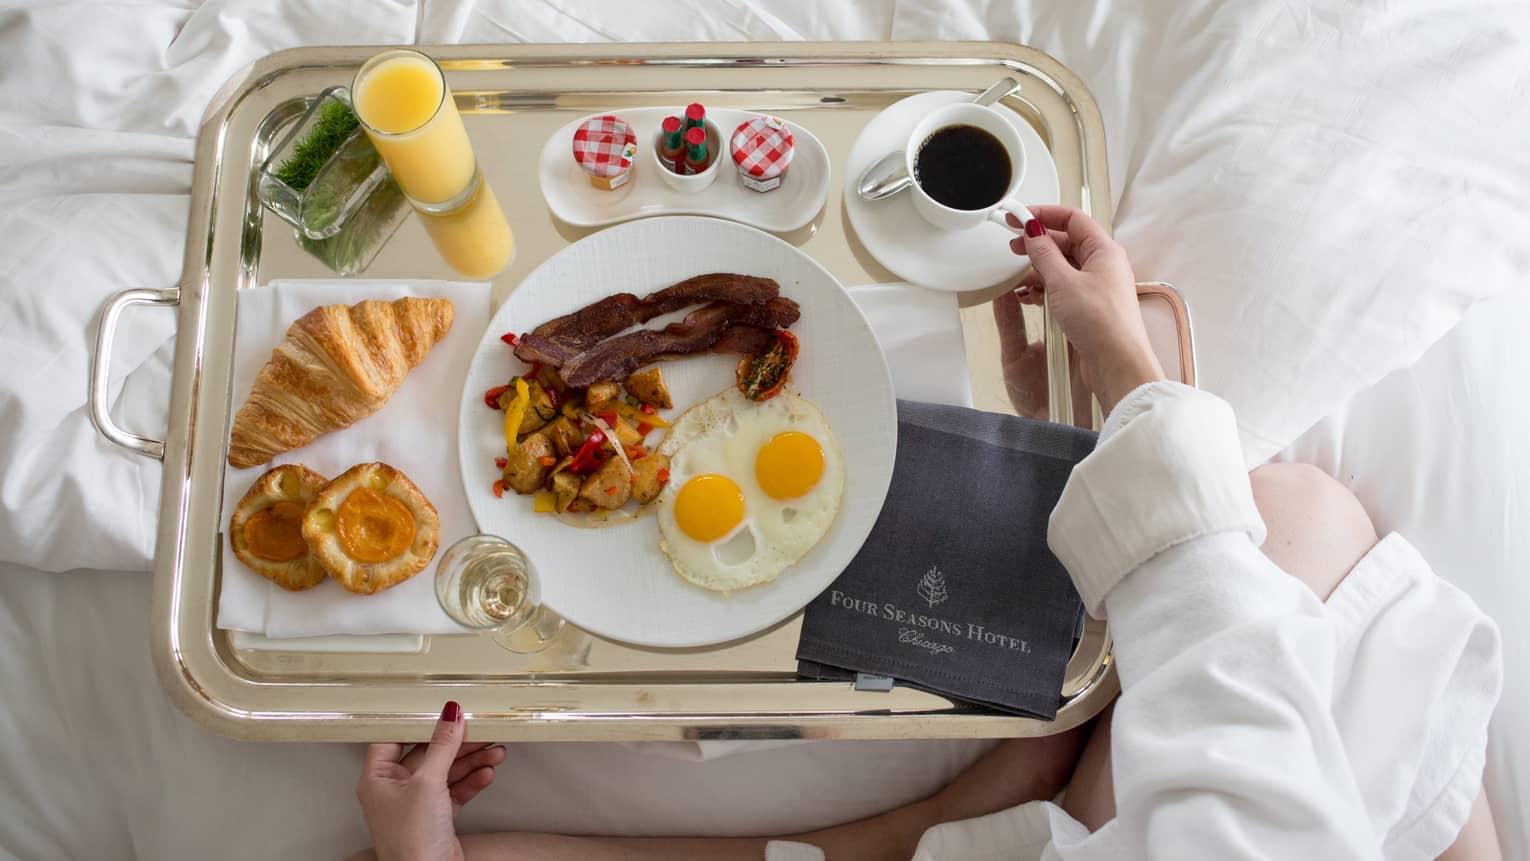 Aerial view of woman holding in-room dining tray with bacon, potatoes, fried eggs, pastries, juice, jam, Four Seasons menu